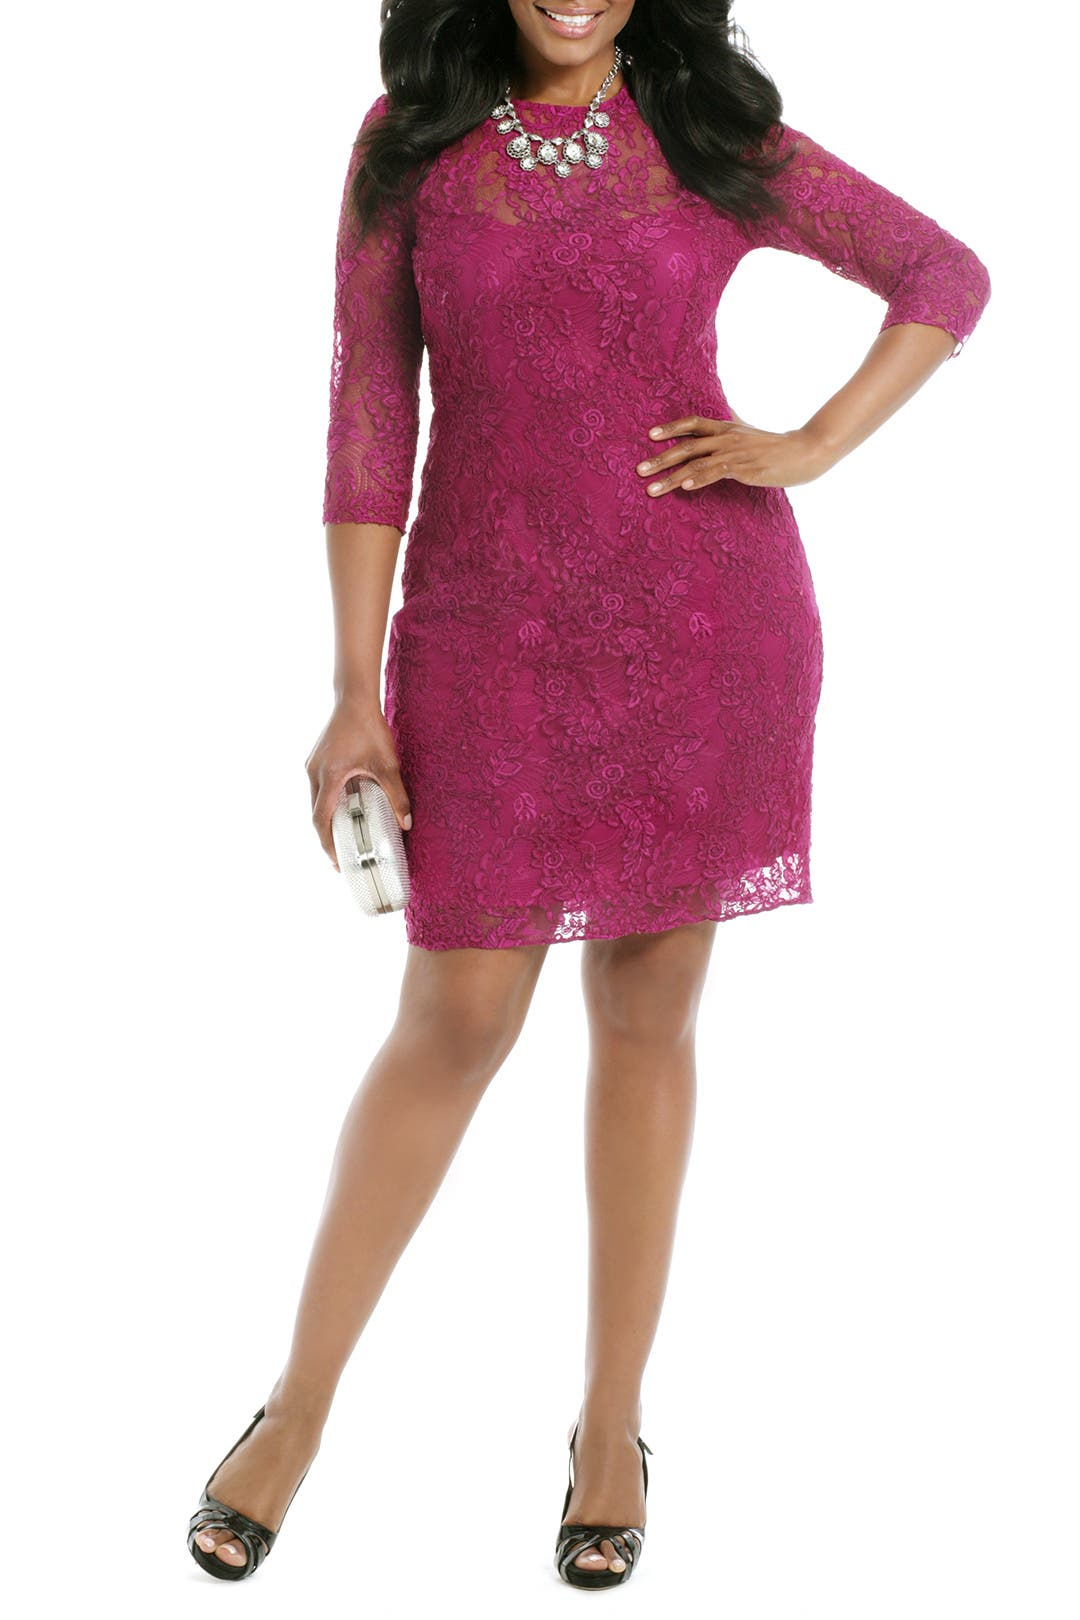 Berry Crush Sheath by Carmen Marc Valvo